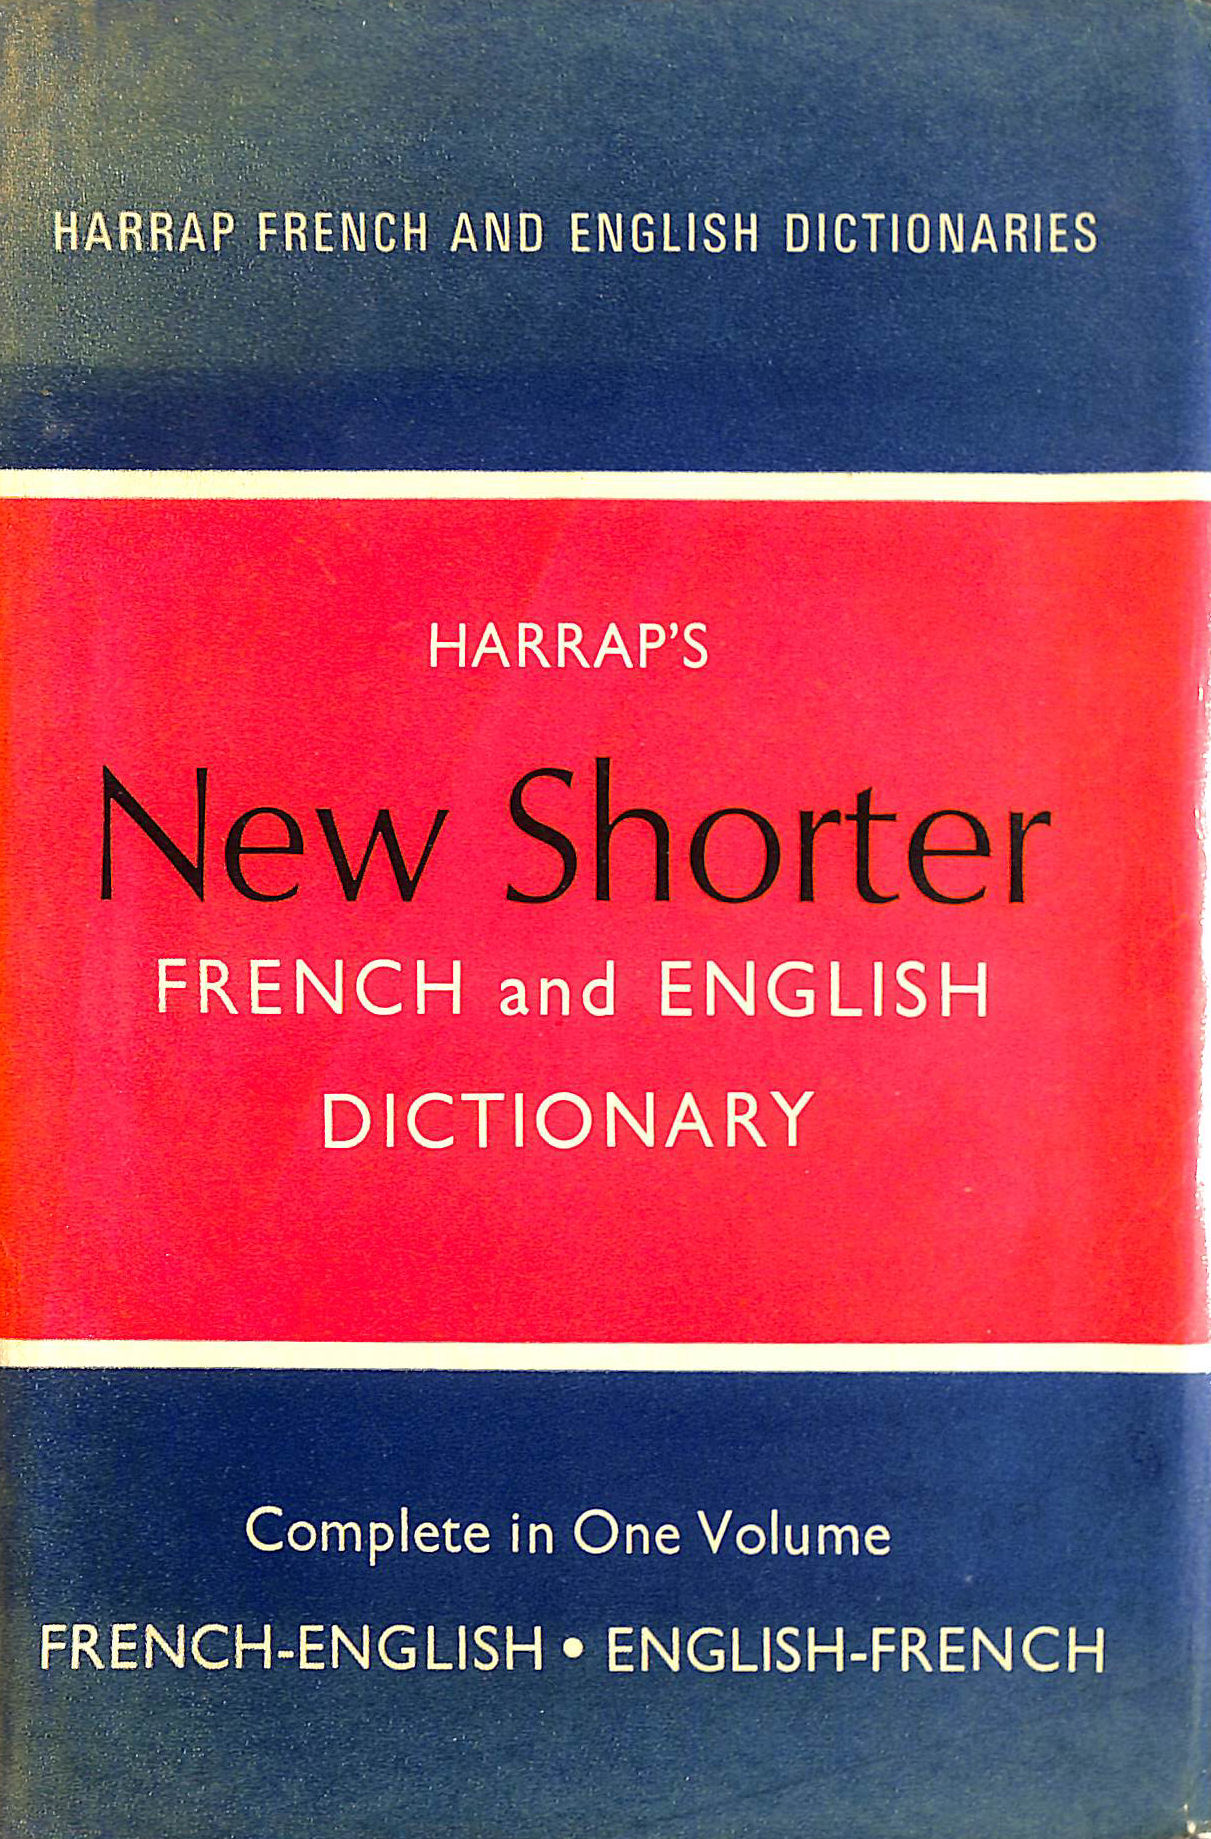 Image for Harrap's Shorter French and English Dictionary. French-English English French. Complete in One Volume